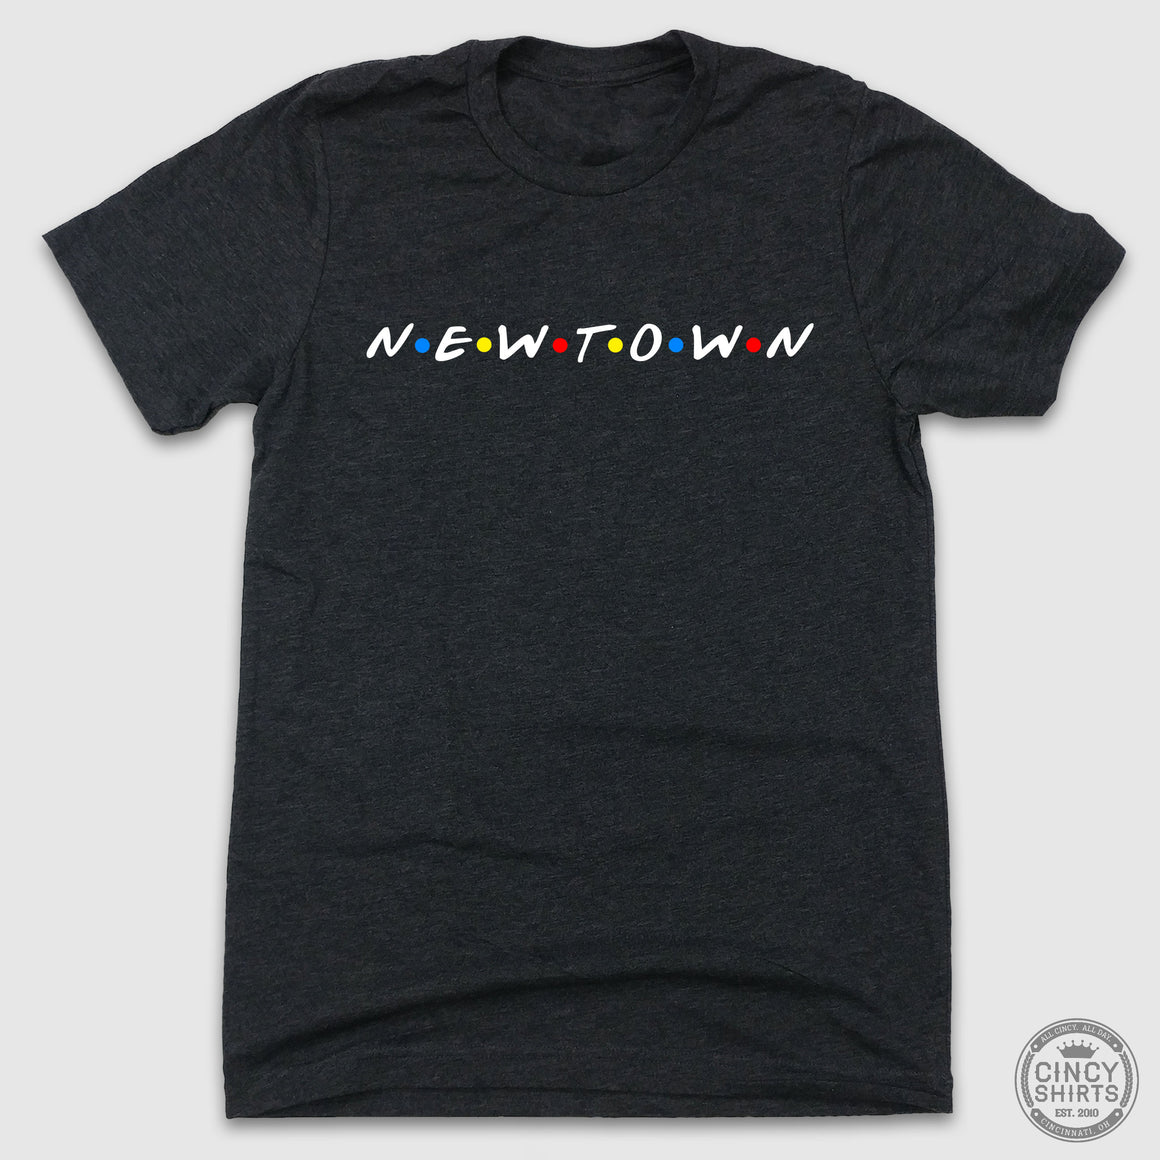 N·E·W·T·O·W·N - Cincy Shirts